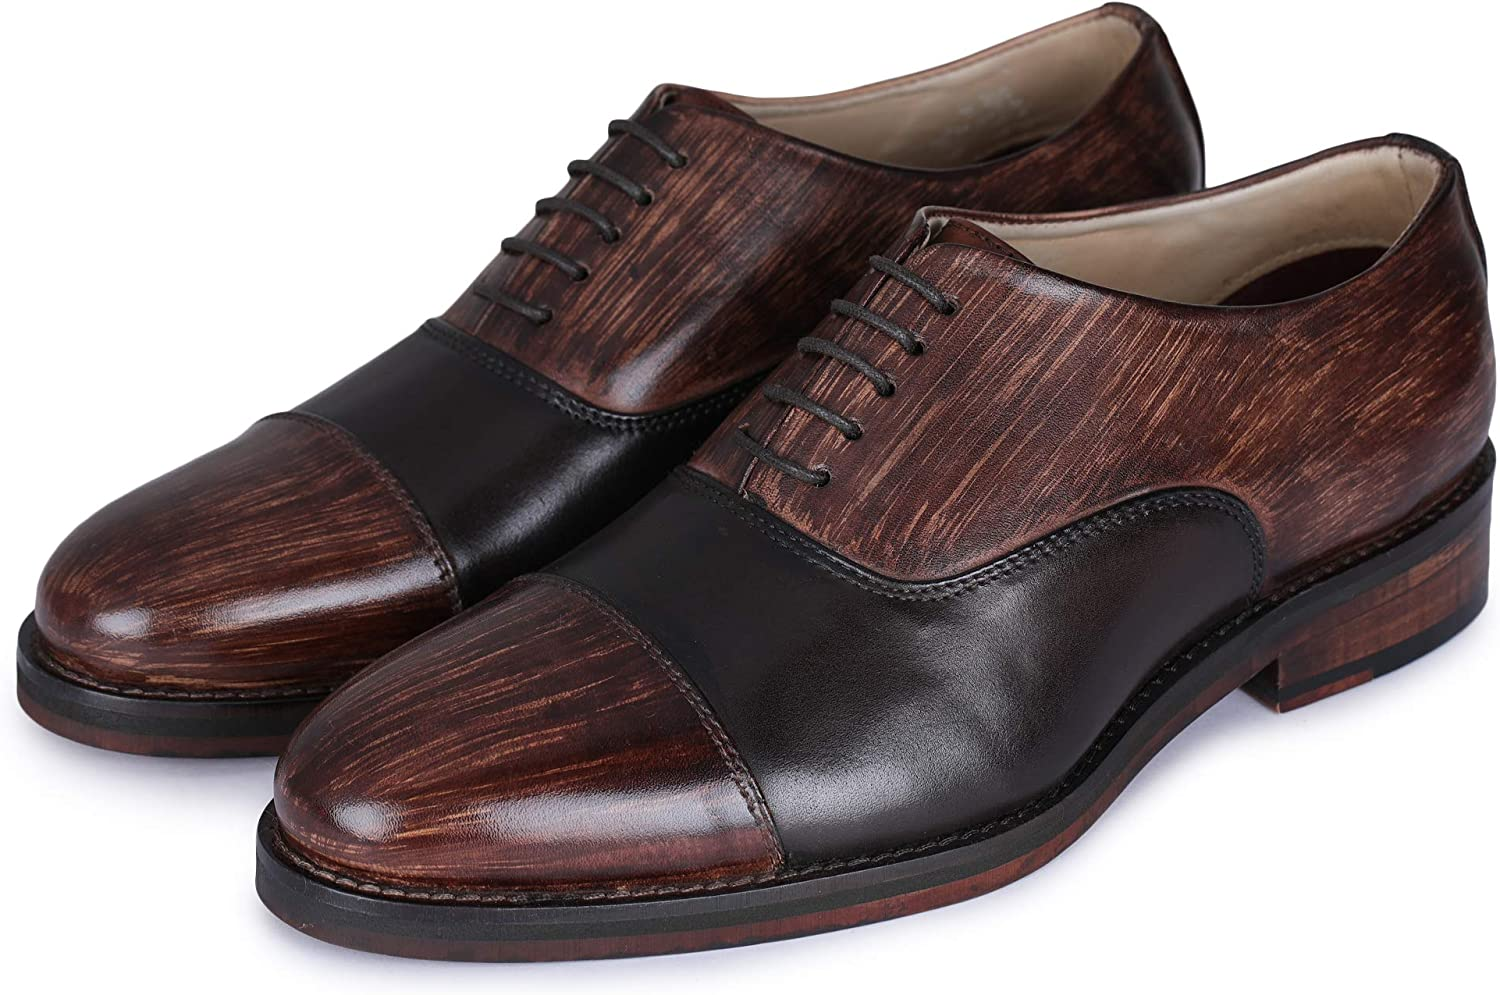 Lethato Handcrafted Mens Classic Captoe Oxford Genuine Leather Lace up Dress shoes